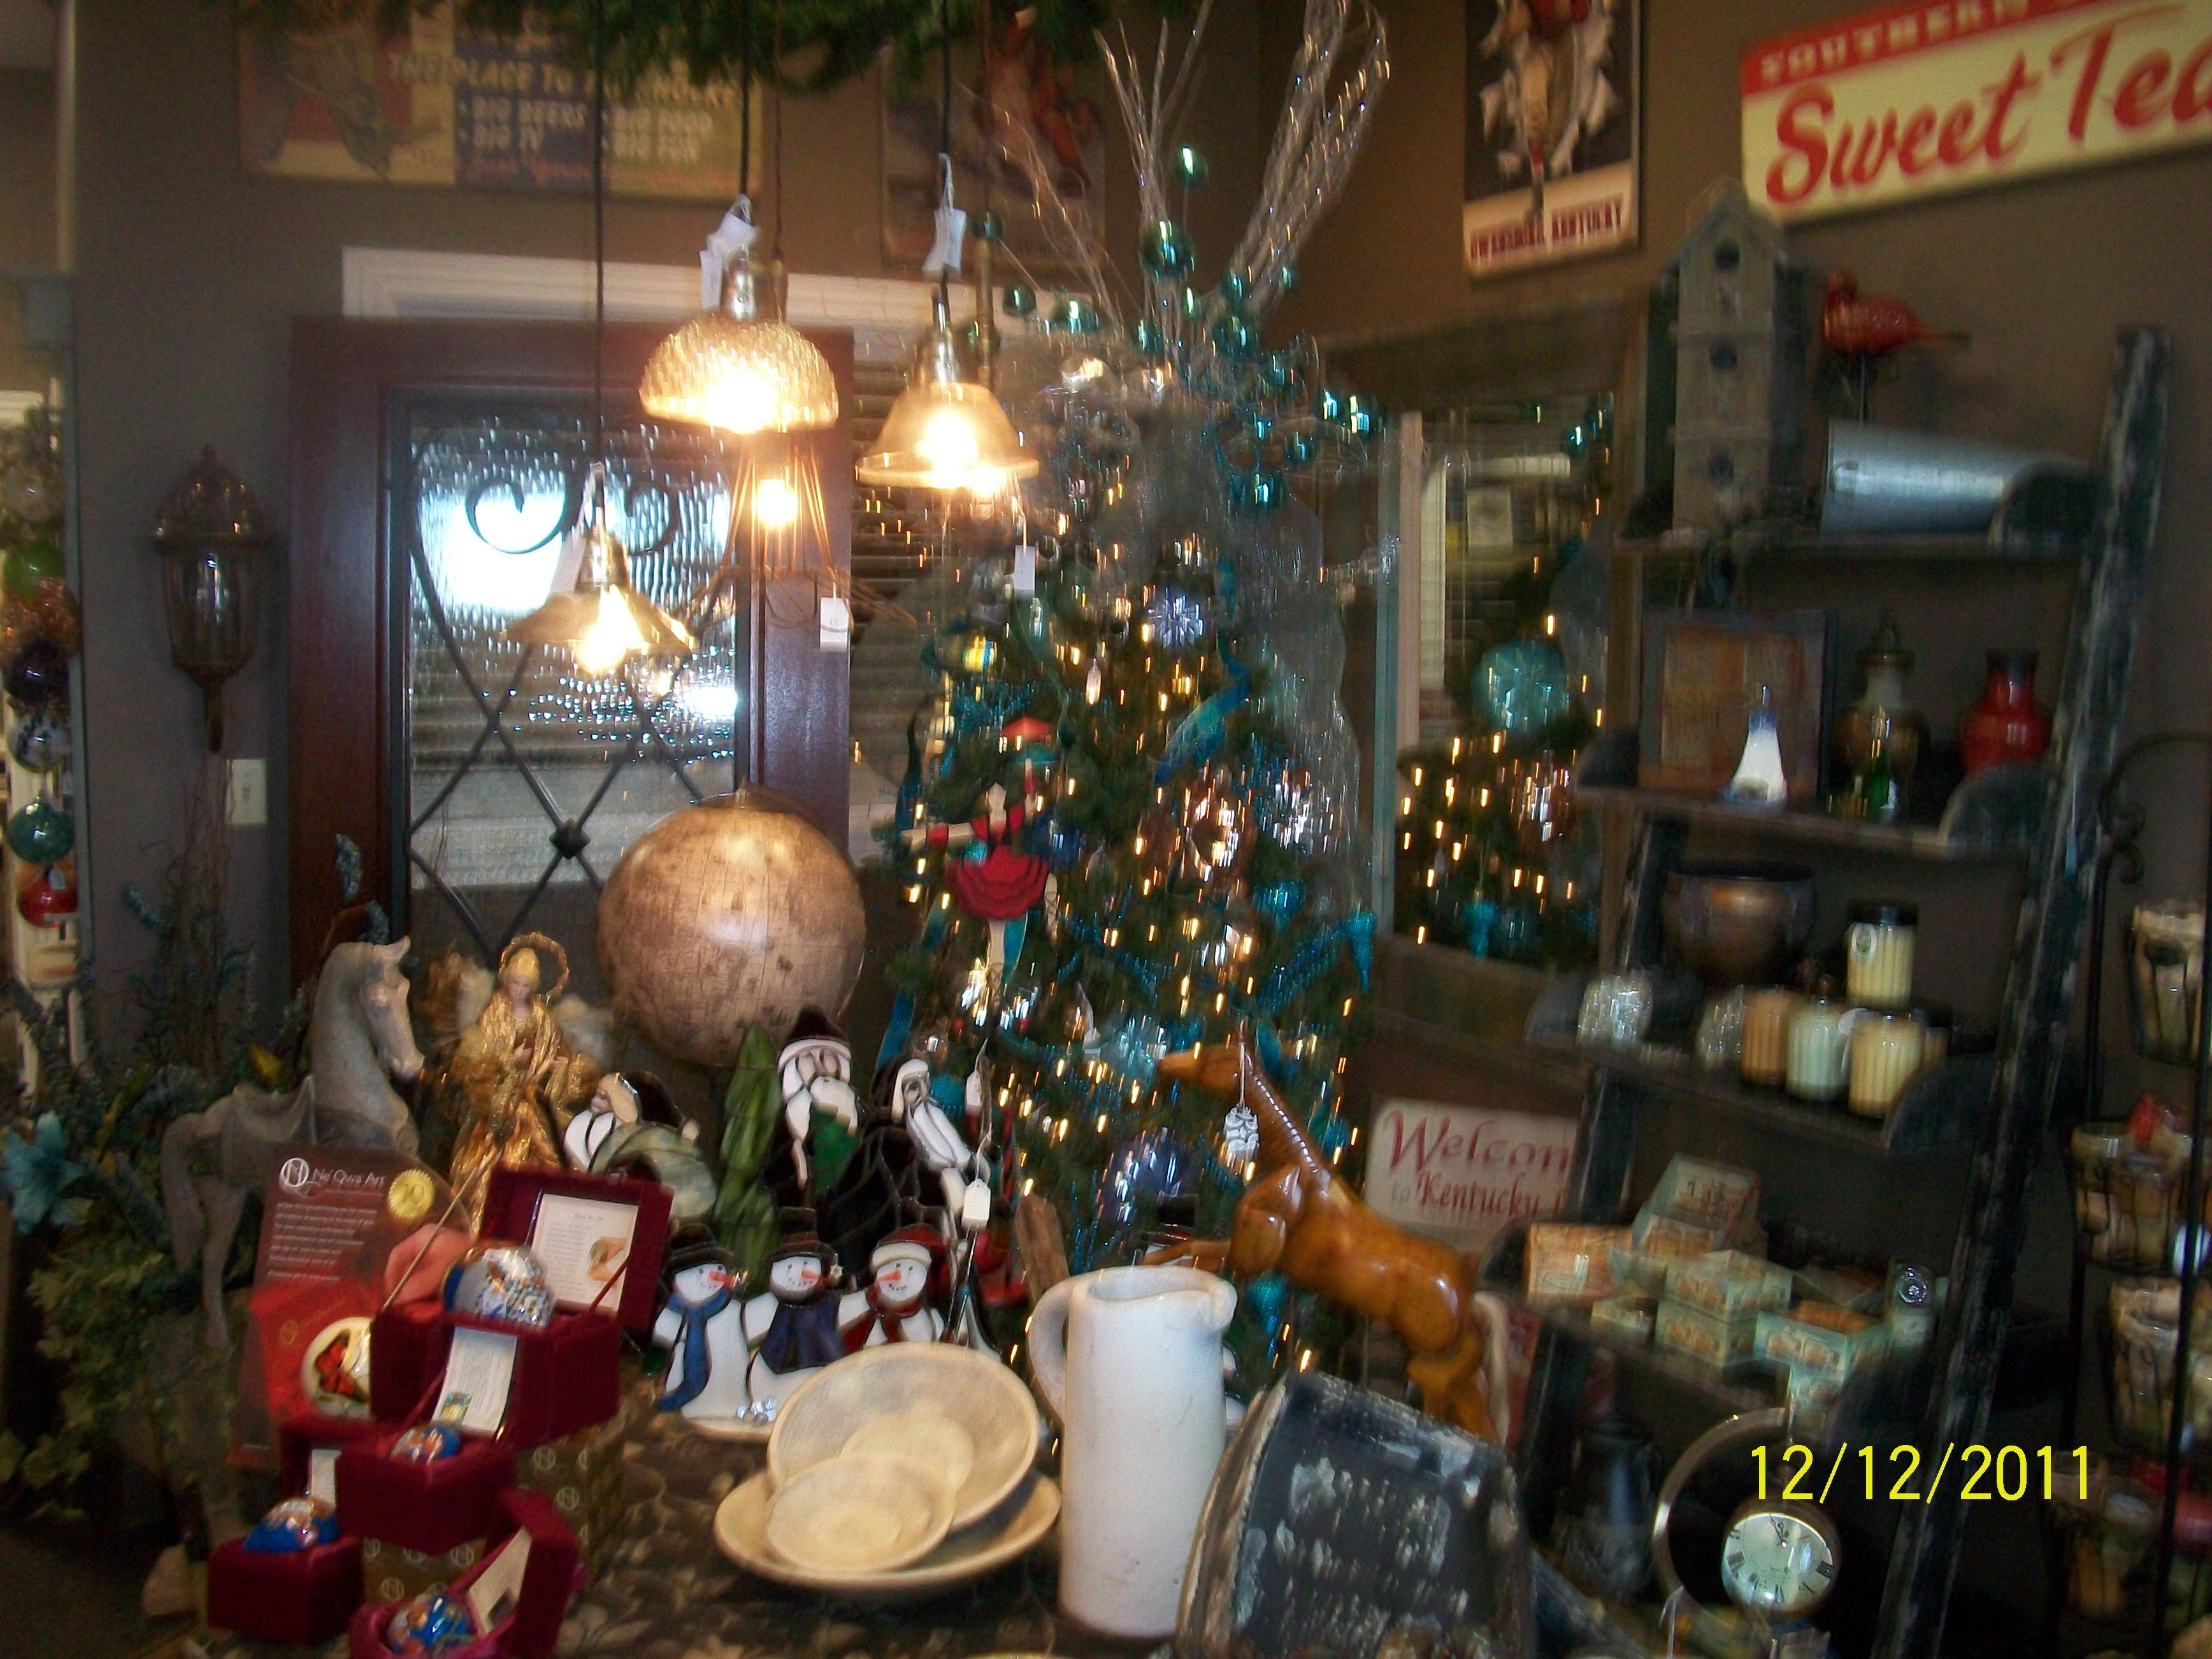 Our store The Glass Factory in Owensboro Ky We are located behind